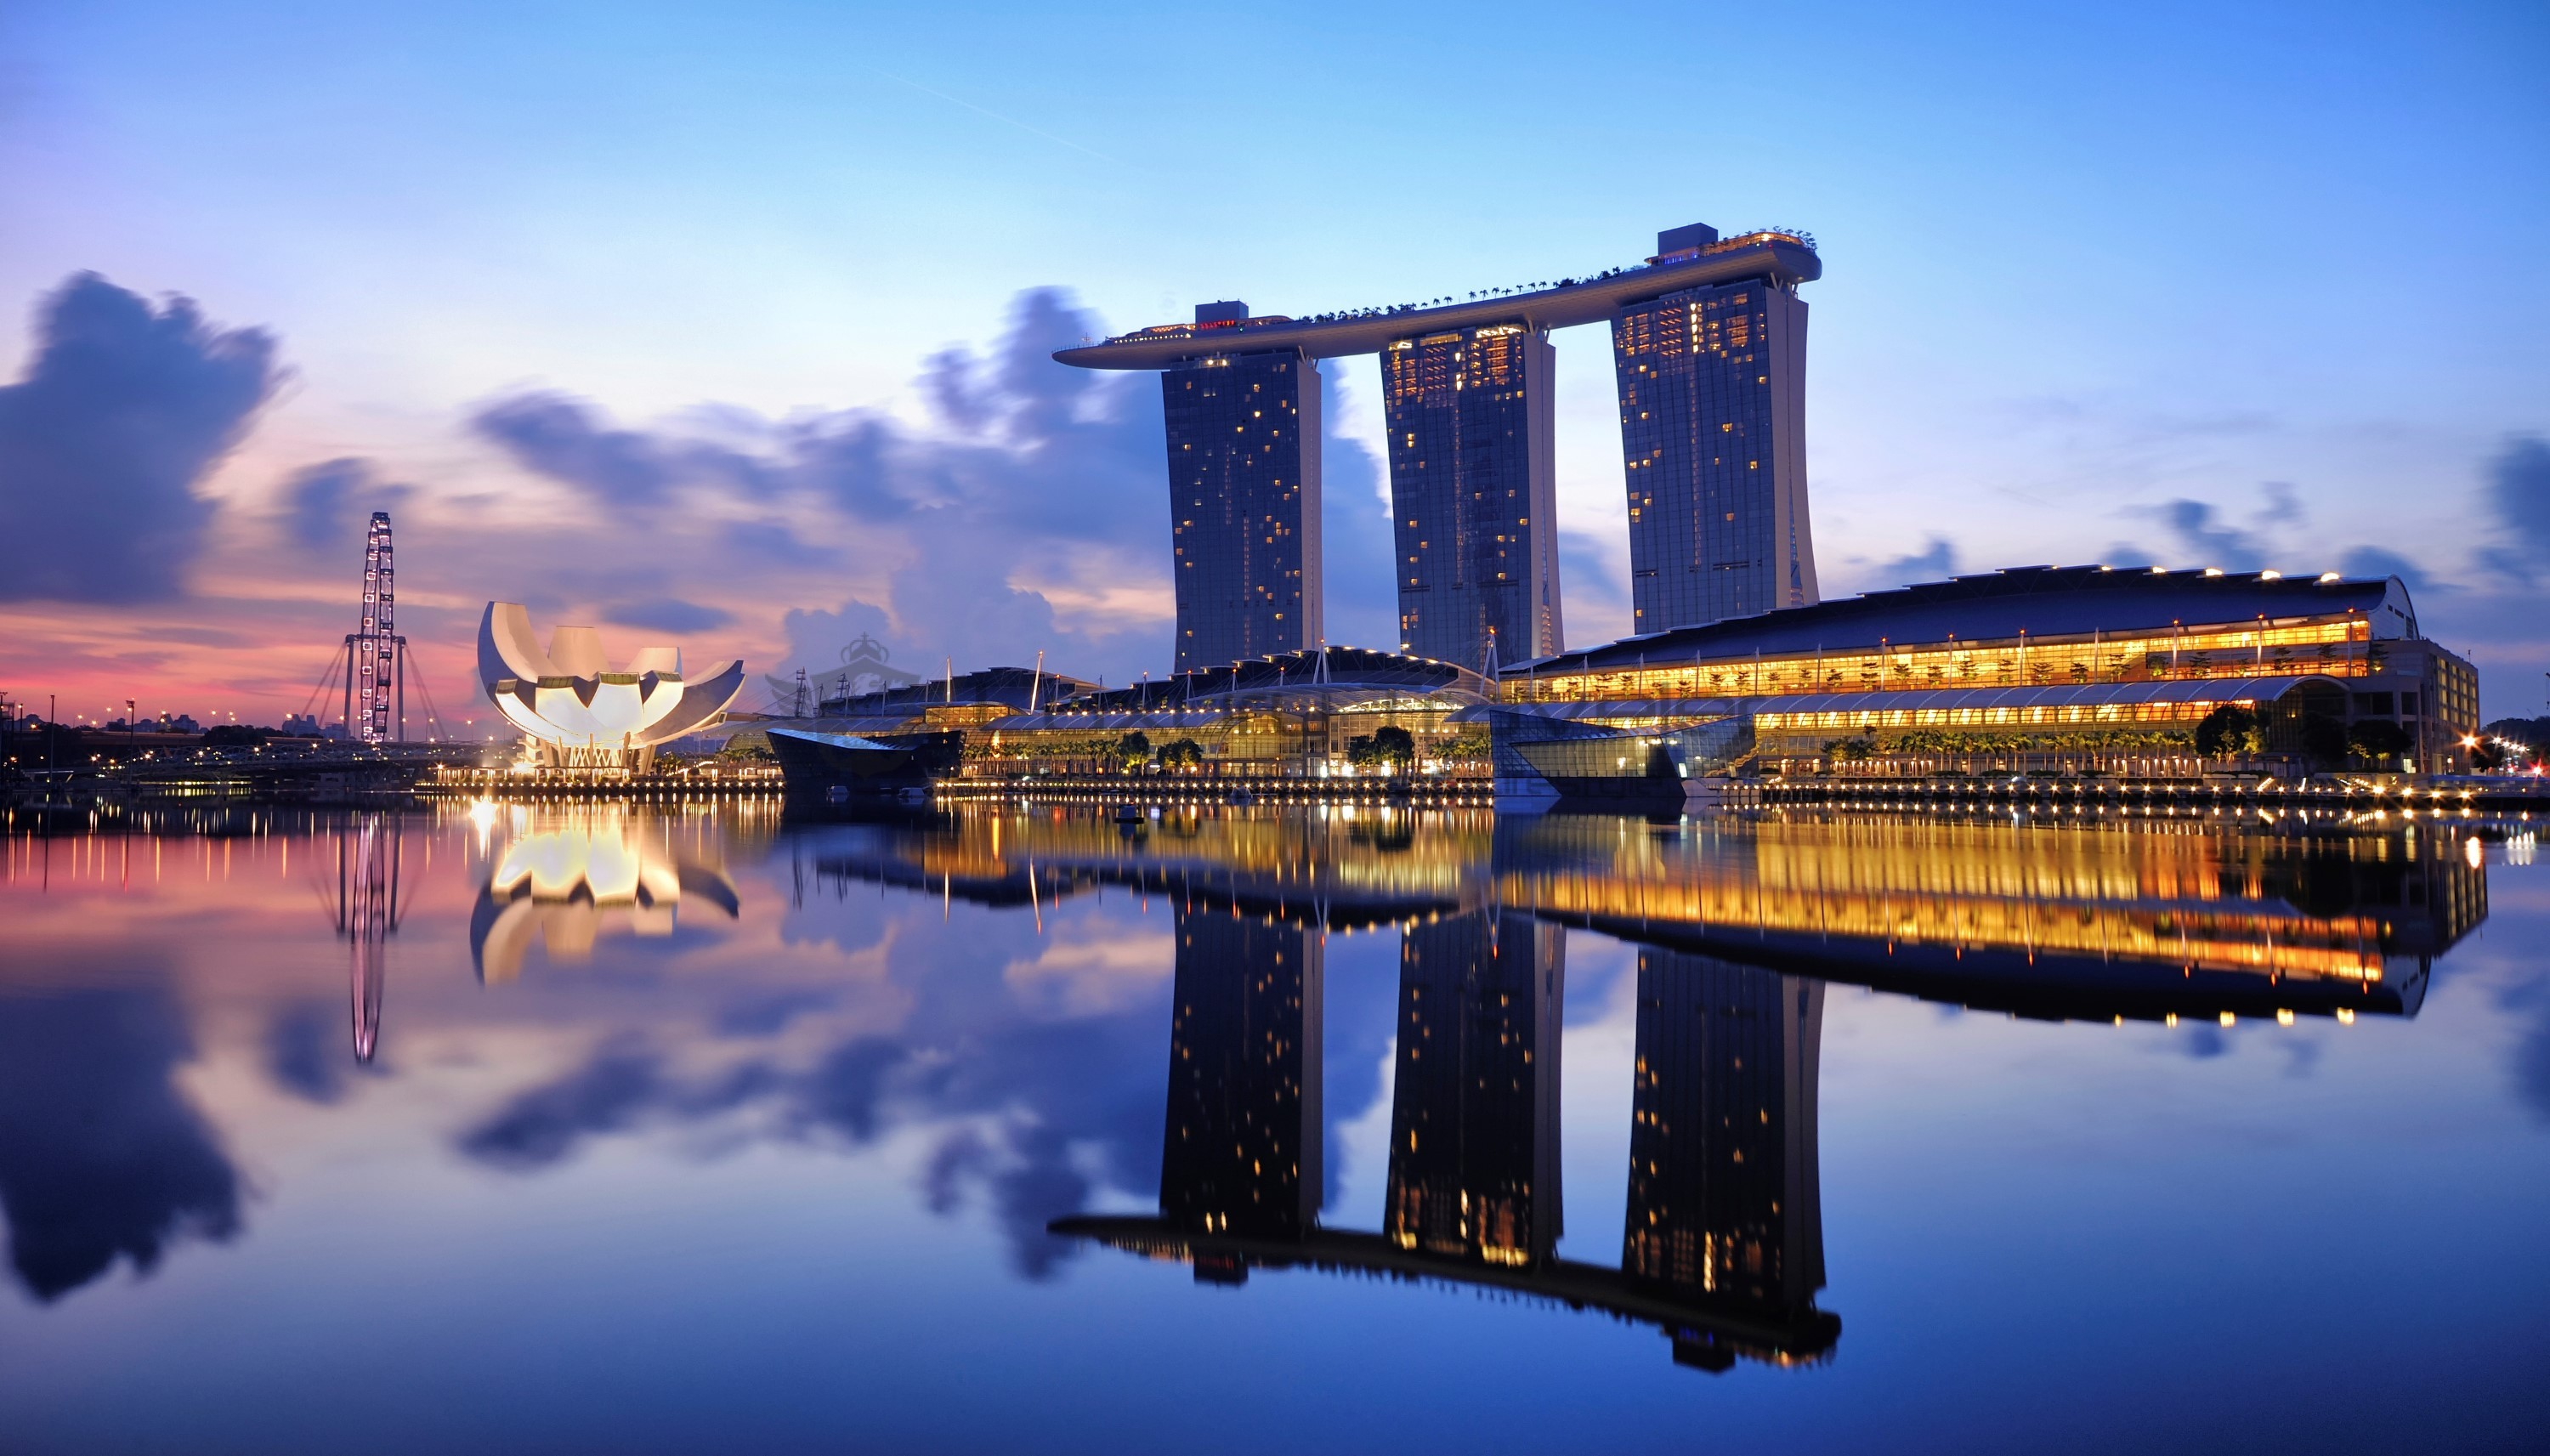 singapore casino hotels 5 star